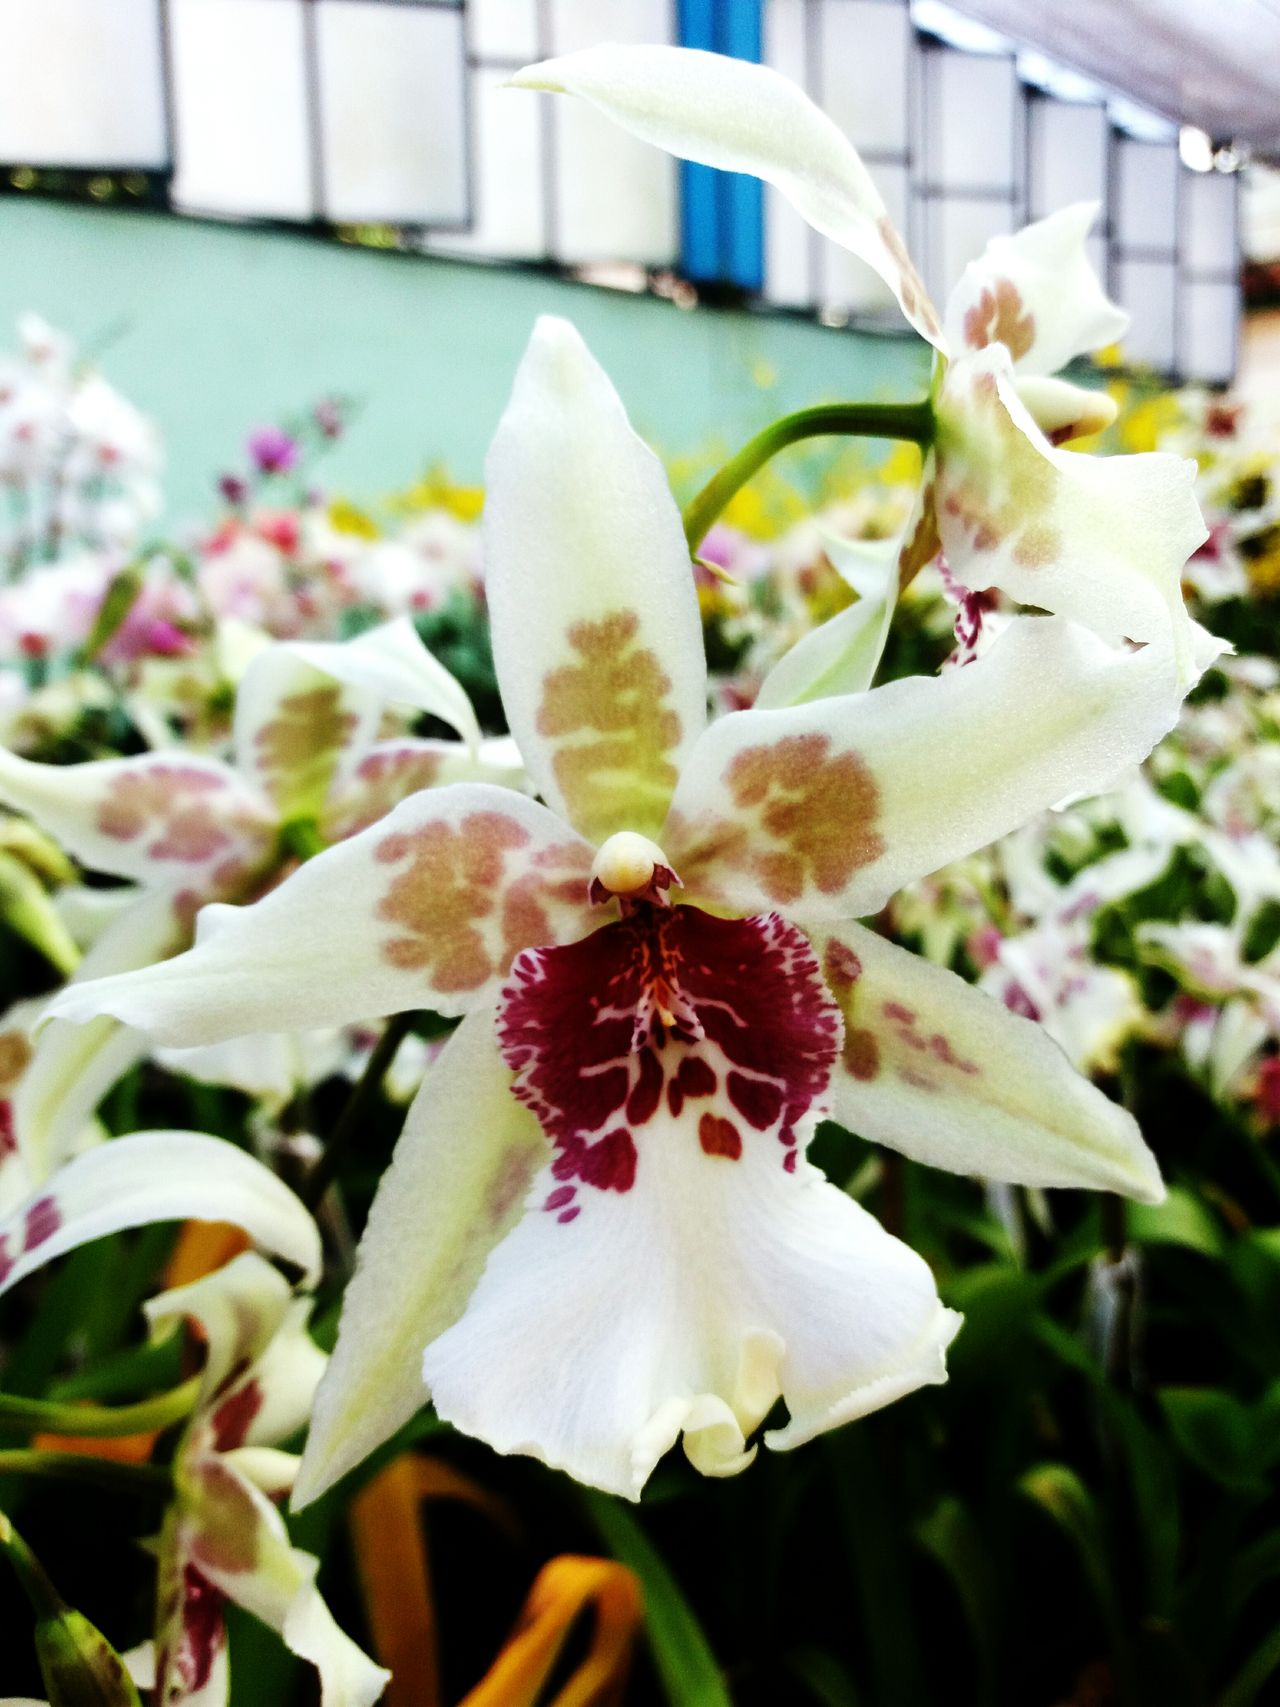 Flower Nature Plant Orchids Orchids Collection Orchids In Bloom Orchid Flower Fragility Beauty In Nature Close-up No People Nature Orchid Springtime Orchidea Multi Colored Blooming Greenhouse Iris - Plant